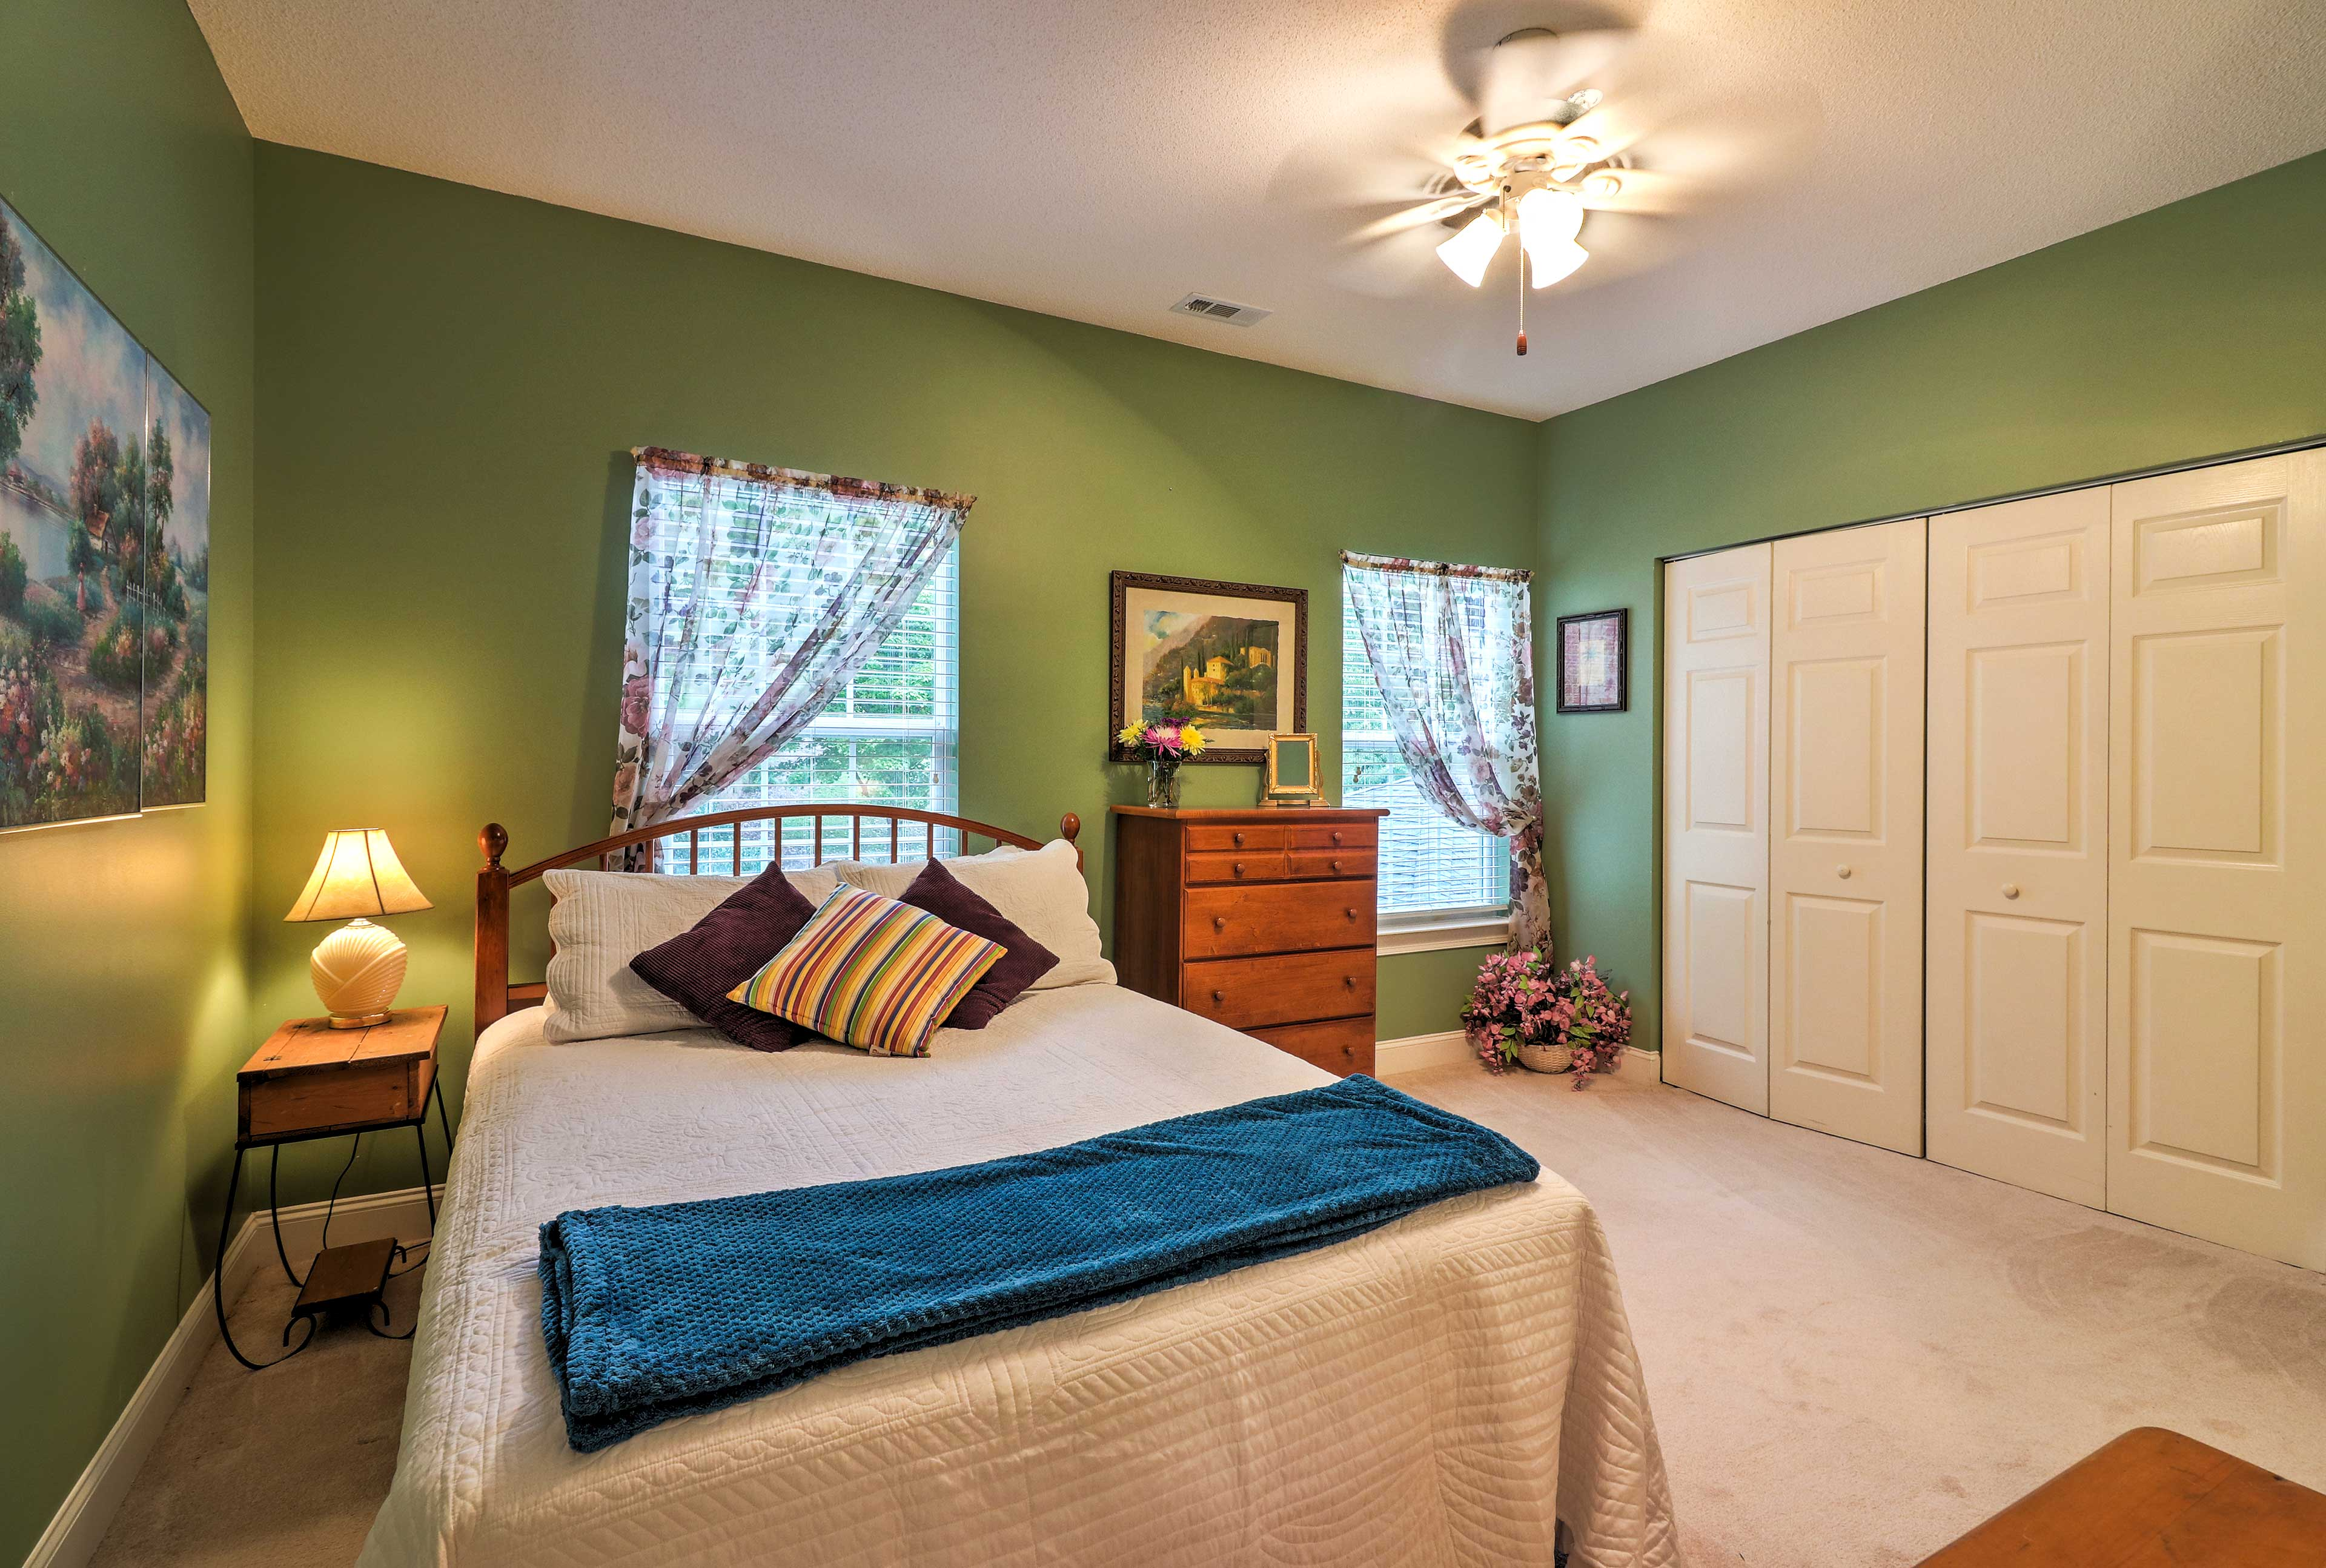 For additional sleeping, find a full-sized rollaway bed in the second bedroom.